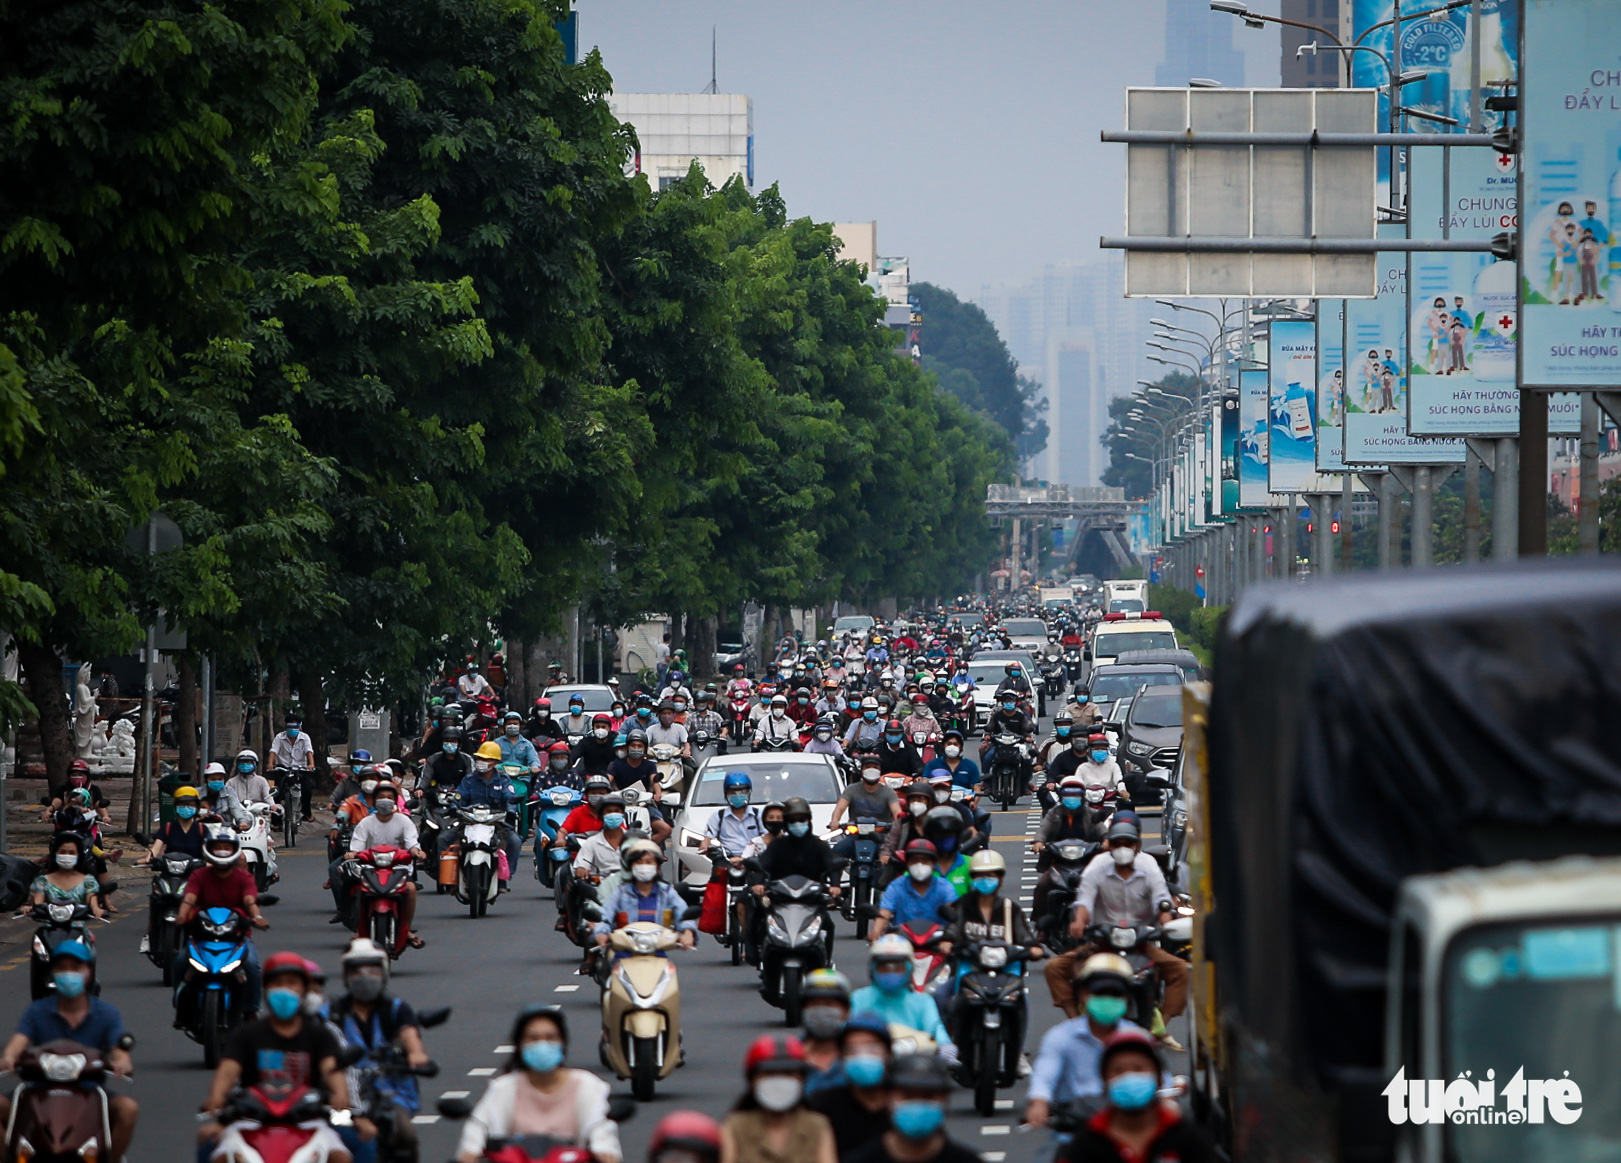 Busy traffic is seen on Cong Hoa Street in Tan Binh District, Ho Chi Minh City, October 4, 2021. Photo: Chau Tuan / Tuoi Tre